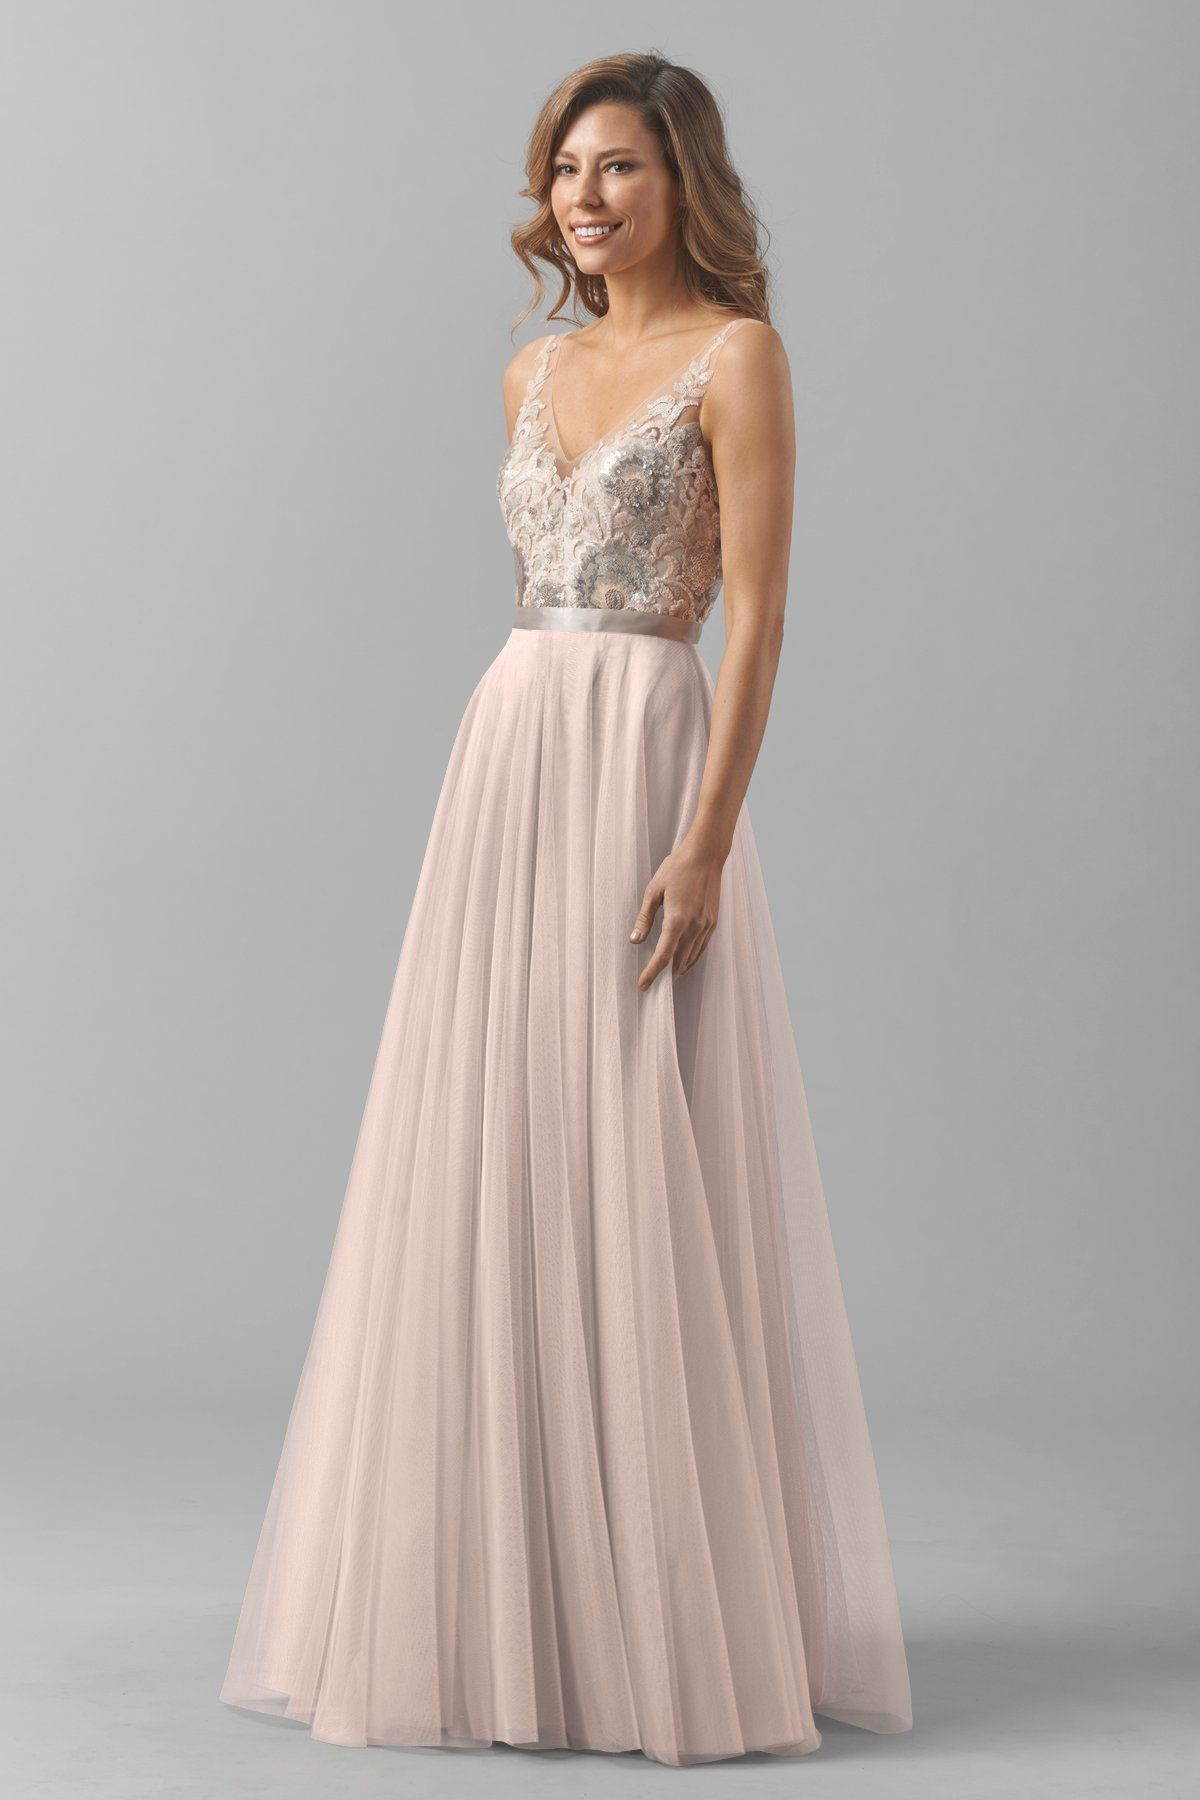 Watters maids dress blair fav bm dresses pinterest maids simple and elegant long bridesmaid dresses ideas for your best bridesmaid ombrellifo Image collections